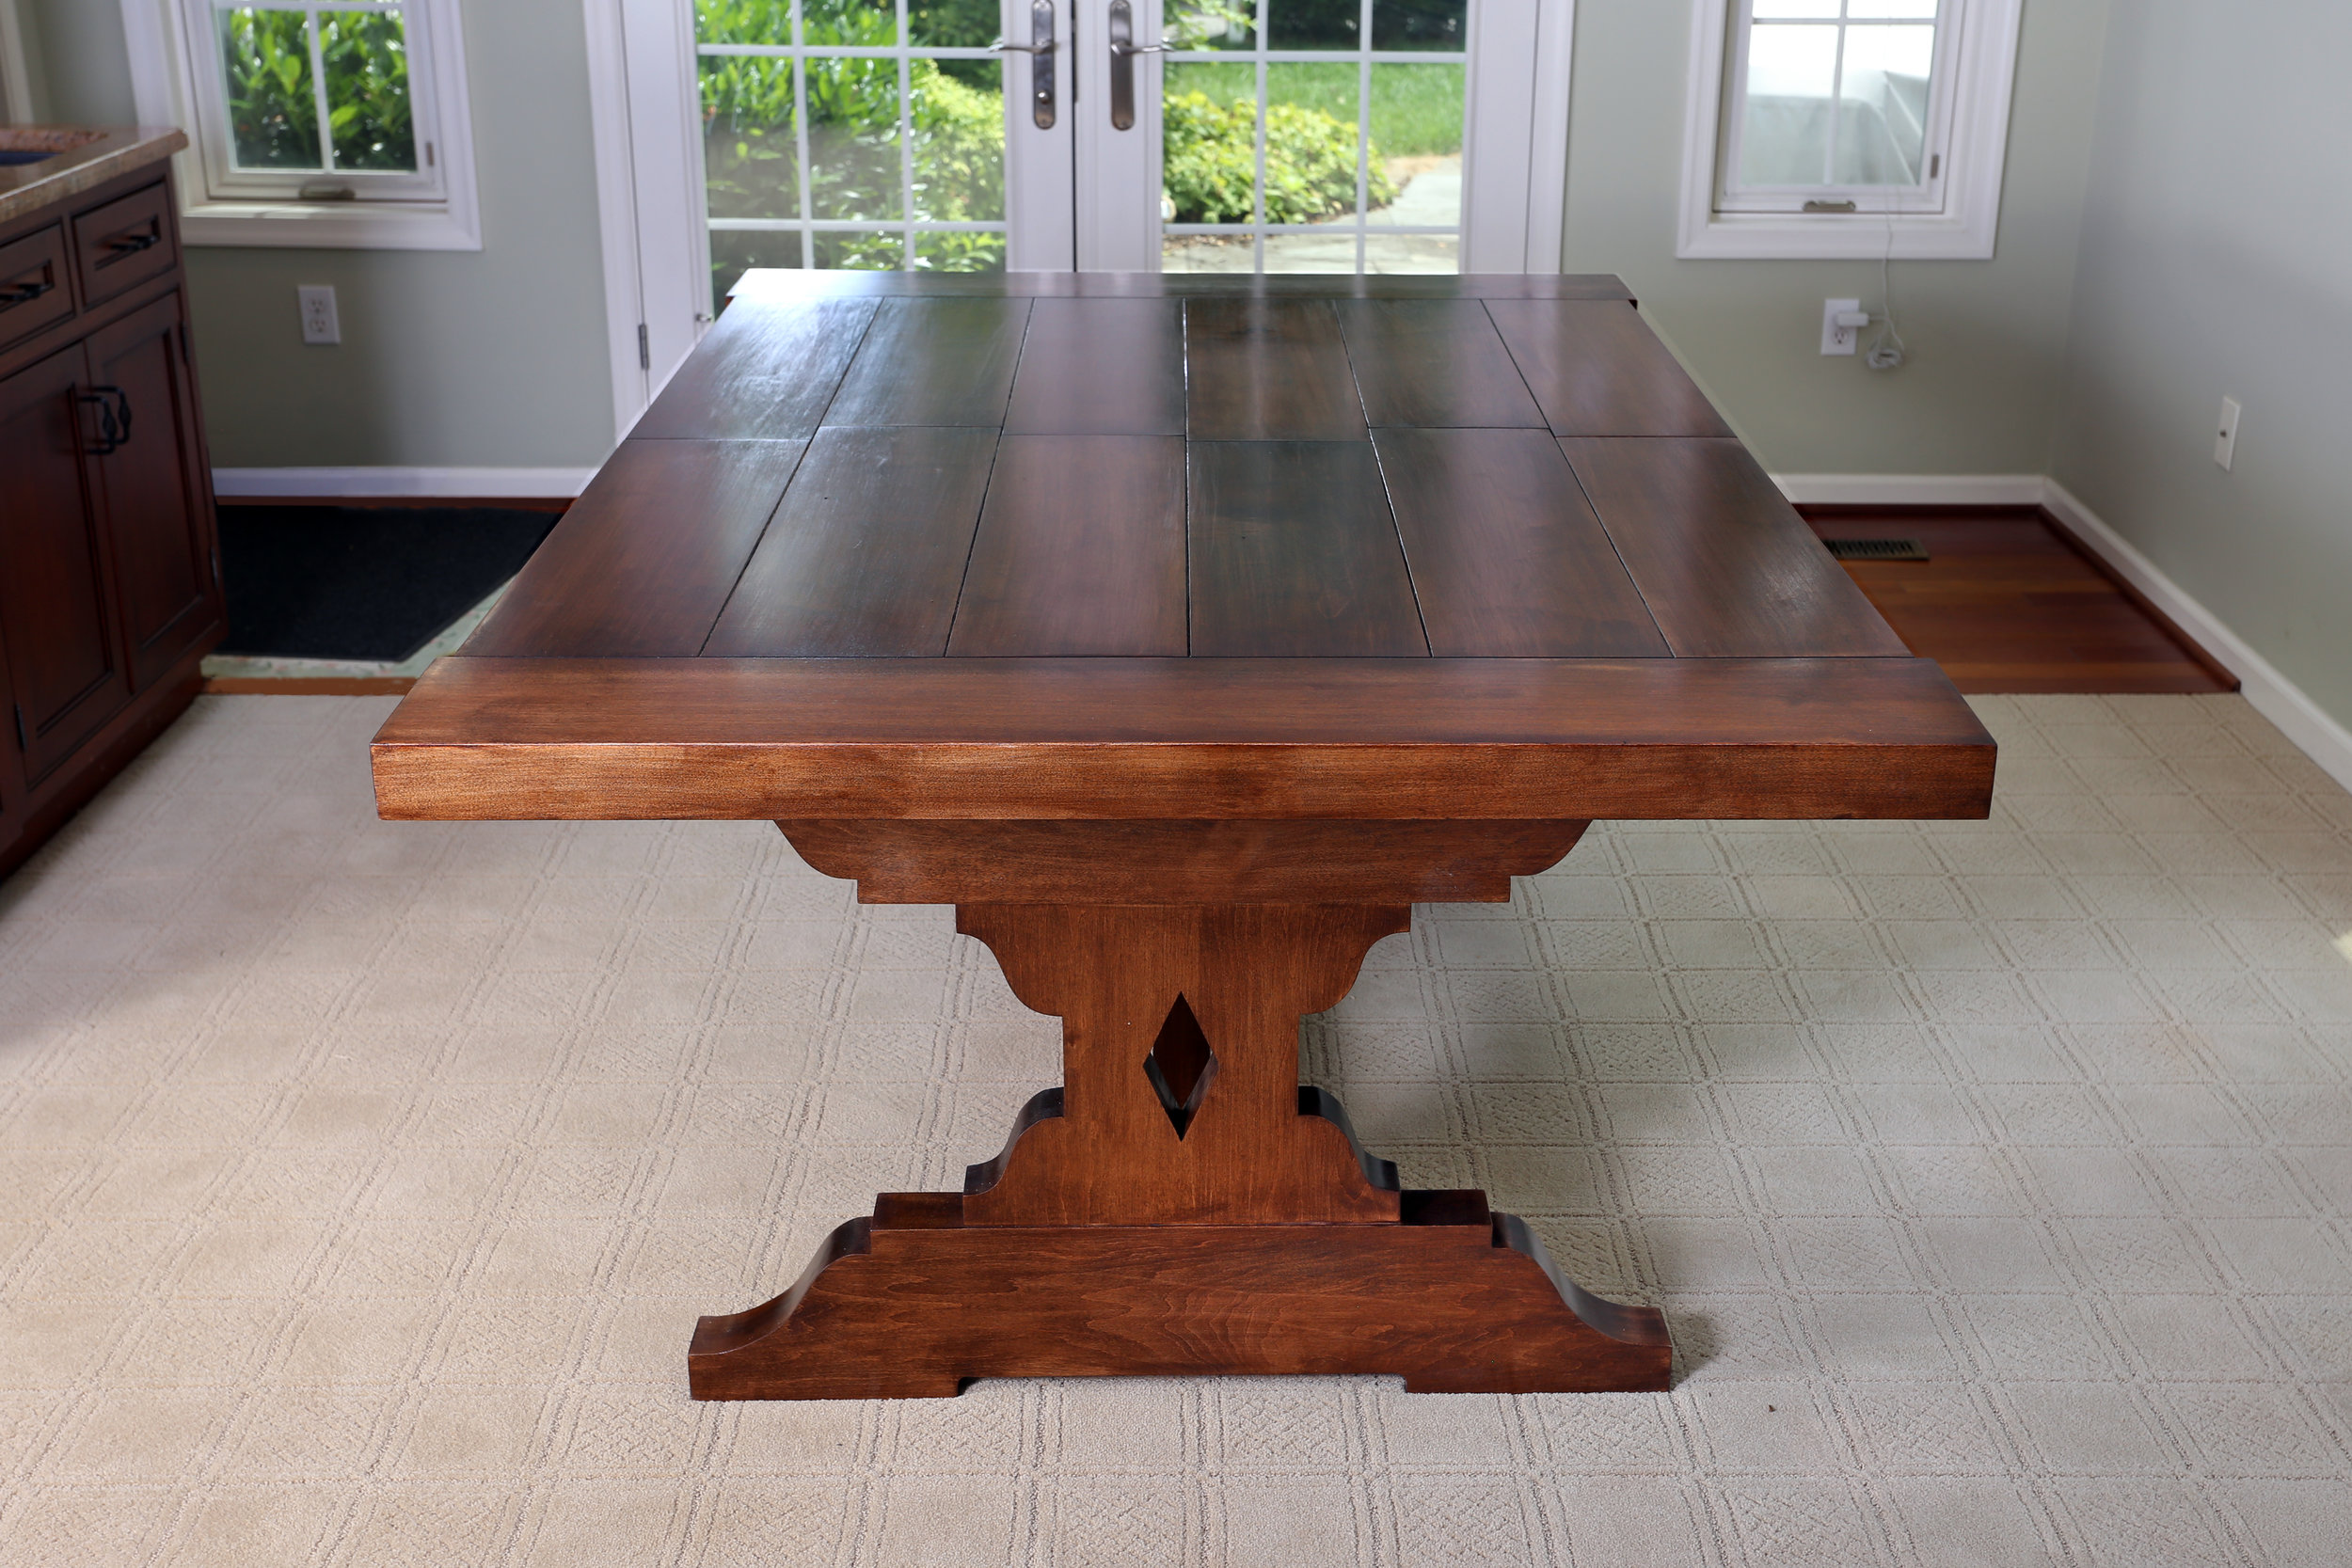 "When the leafs are stored away, the table is 78"" long and can seat 4-6 people comfortably."